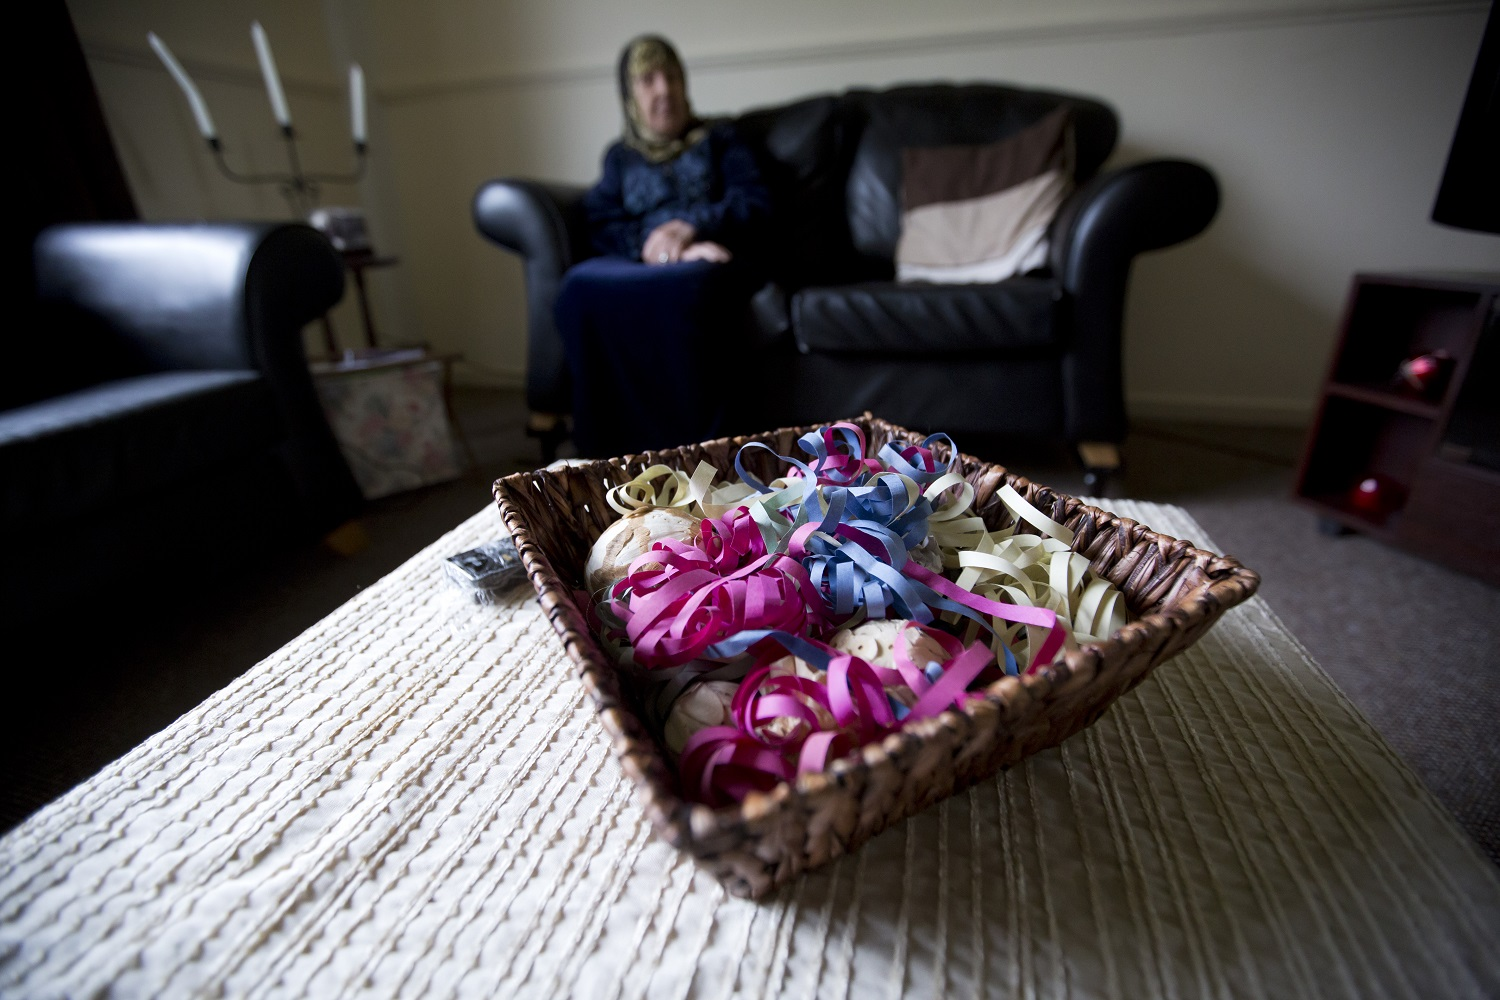 A elderly refugee woman, resettled to the UK after fleeing war in Syria, sits peacefully on a sofa in her new home. In the foreground is a bowl of brightly coloured paper decorations.